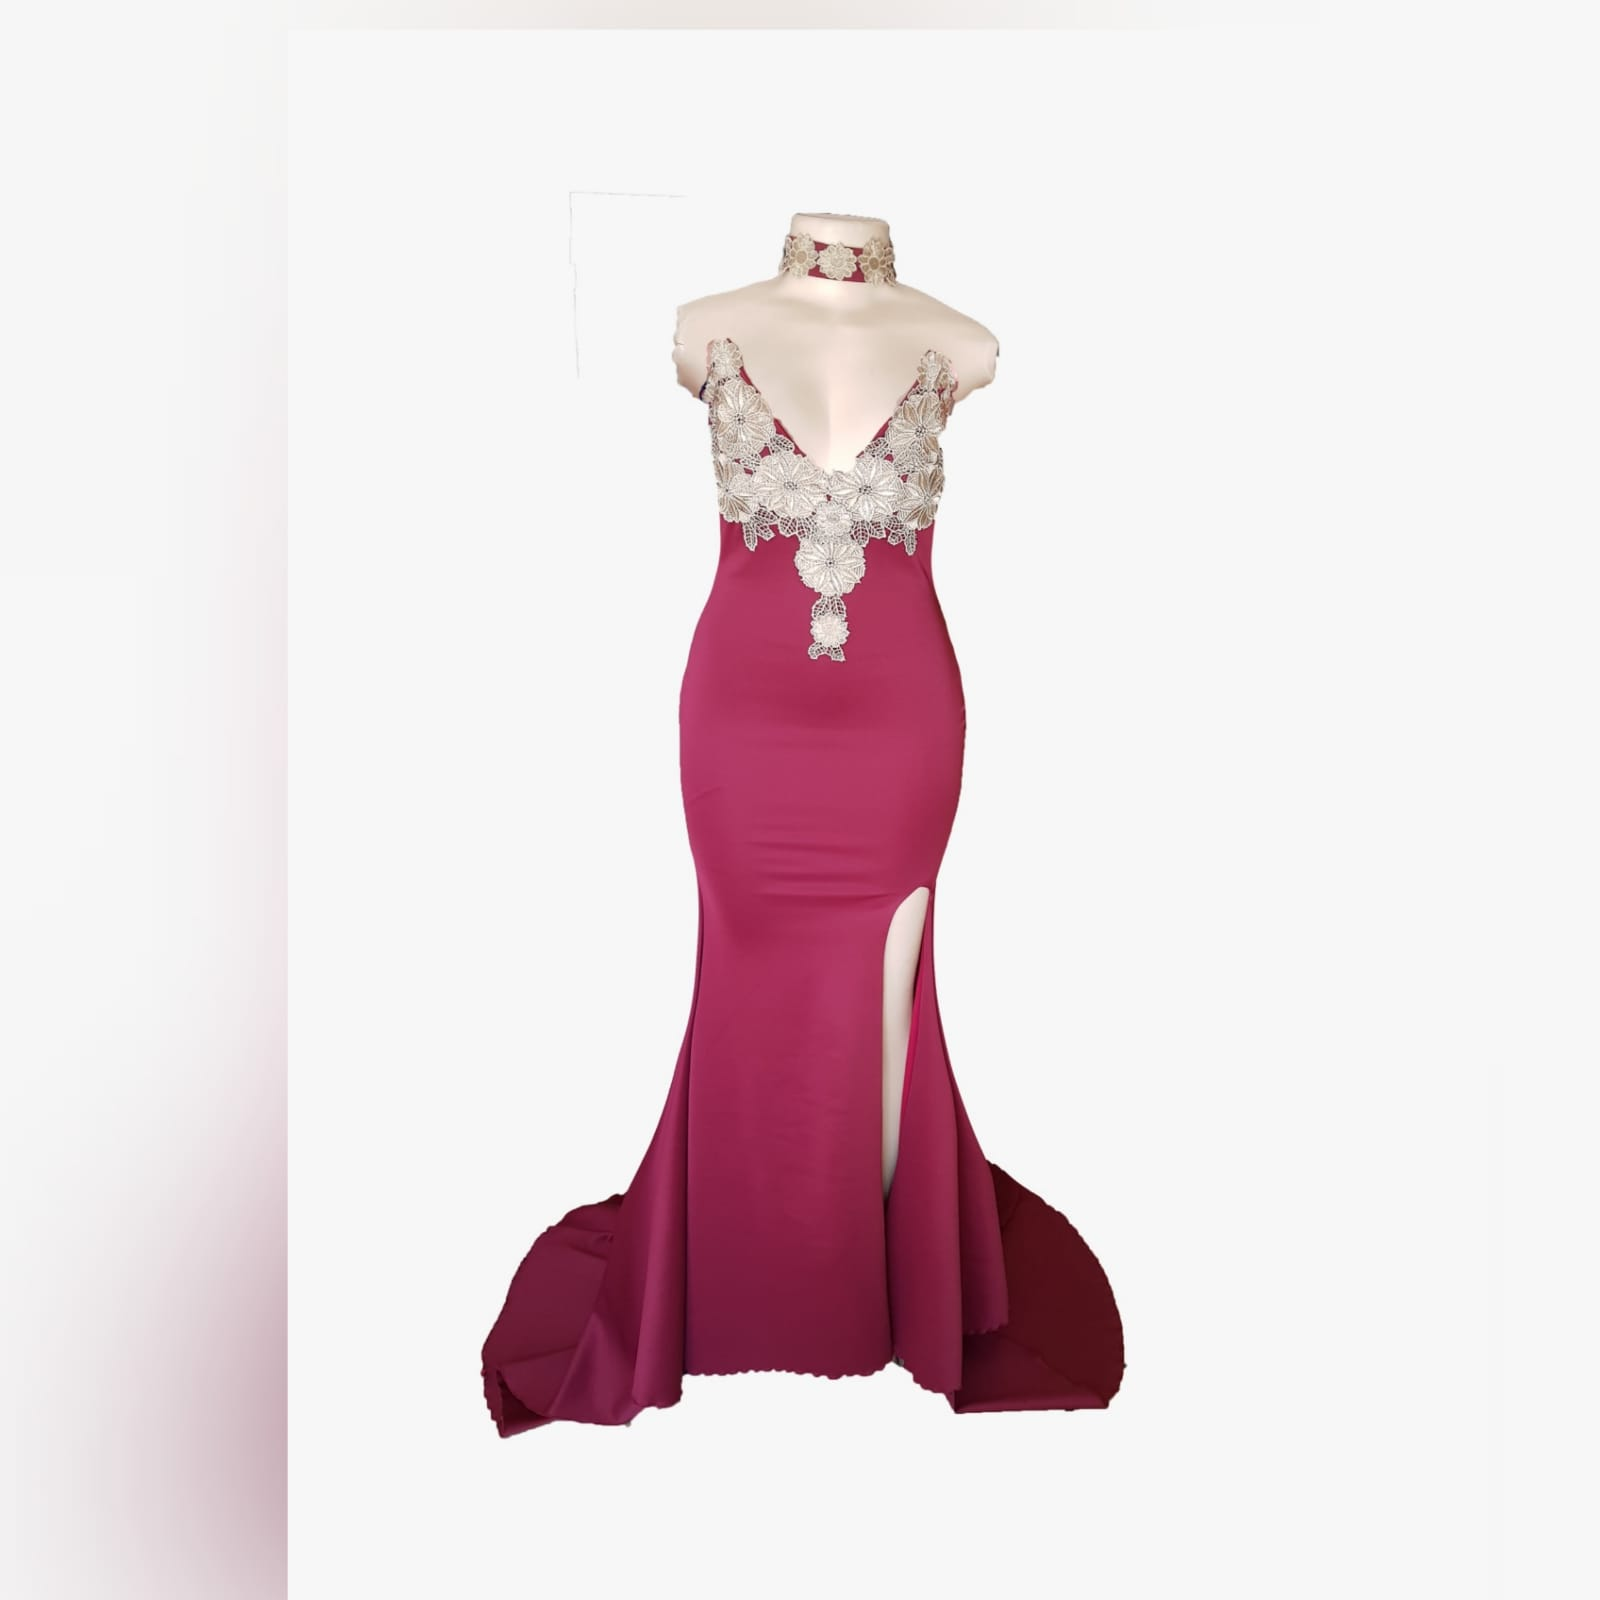 Burgundy and gold soft mermaid gala dress 4 burgundy and gold soft mermaid gala dress for a formal function. Boobtube with a v neckline, high slit and a train. Bodice detailed with gold shimmer lace. With a matching choker.